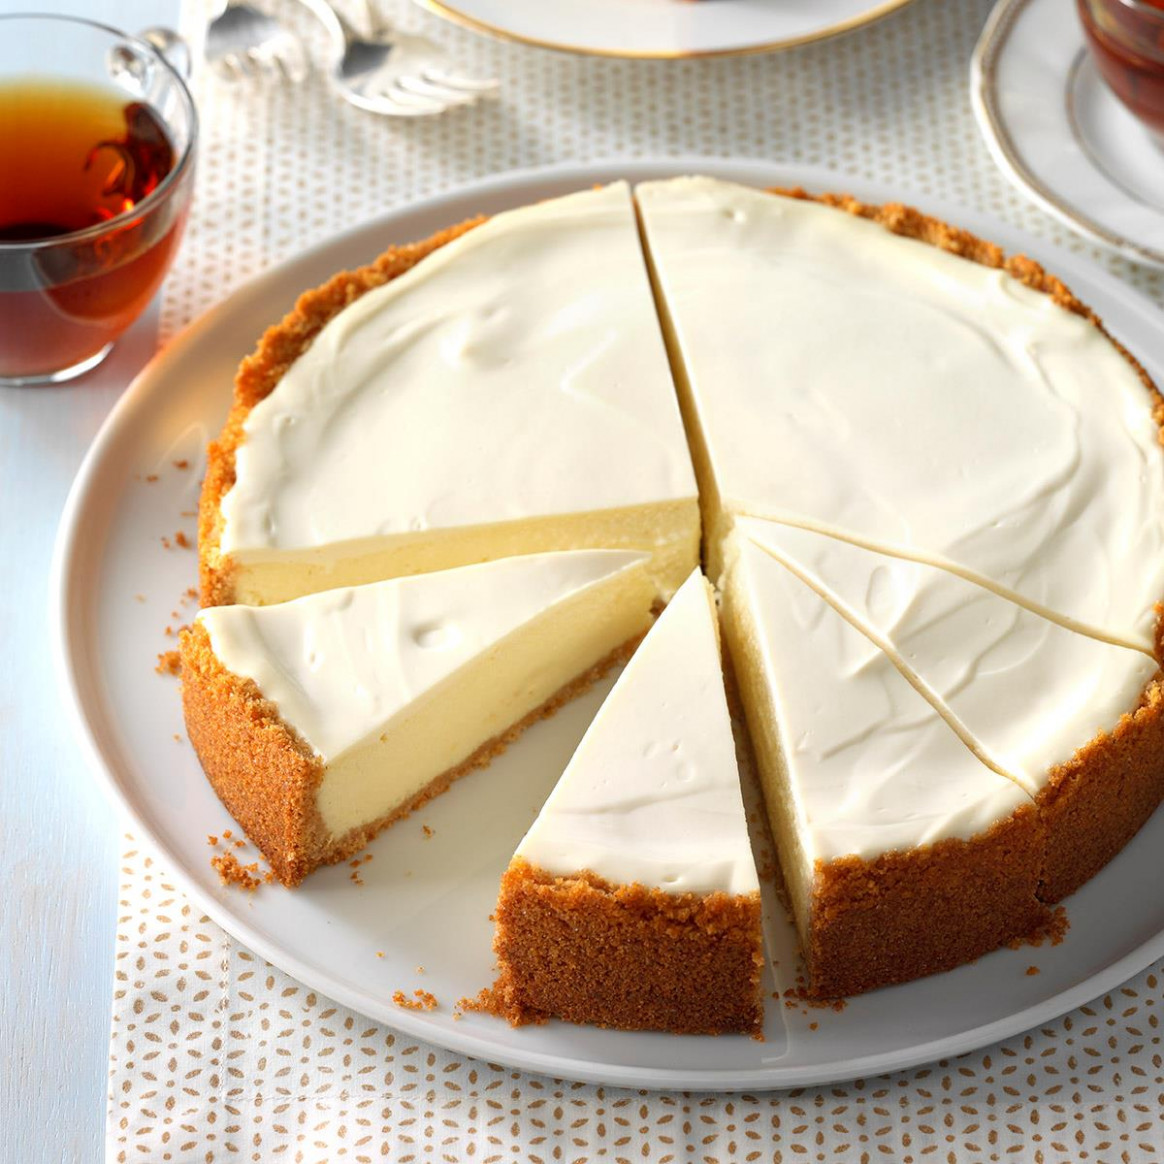 Old-World Ricotta Cheesecake Recipe | Taste of Home